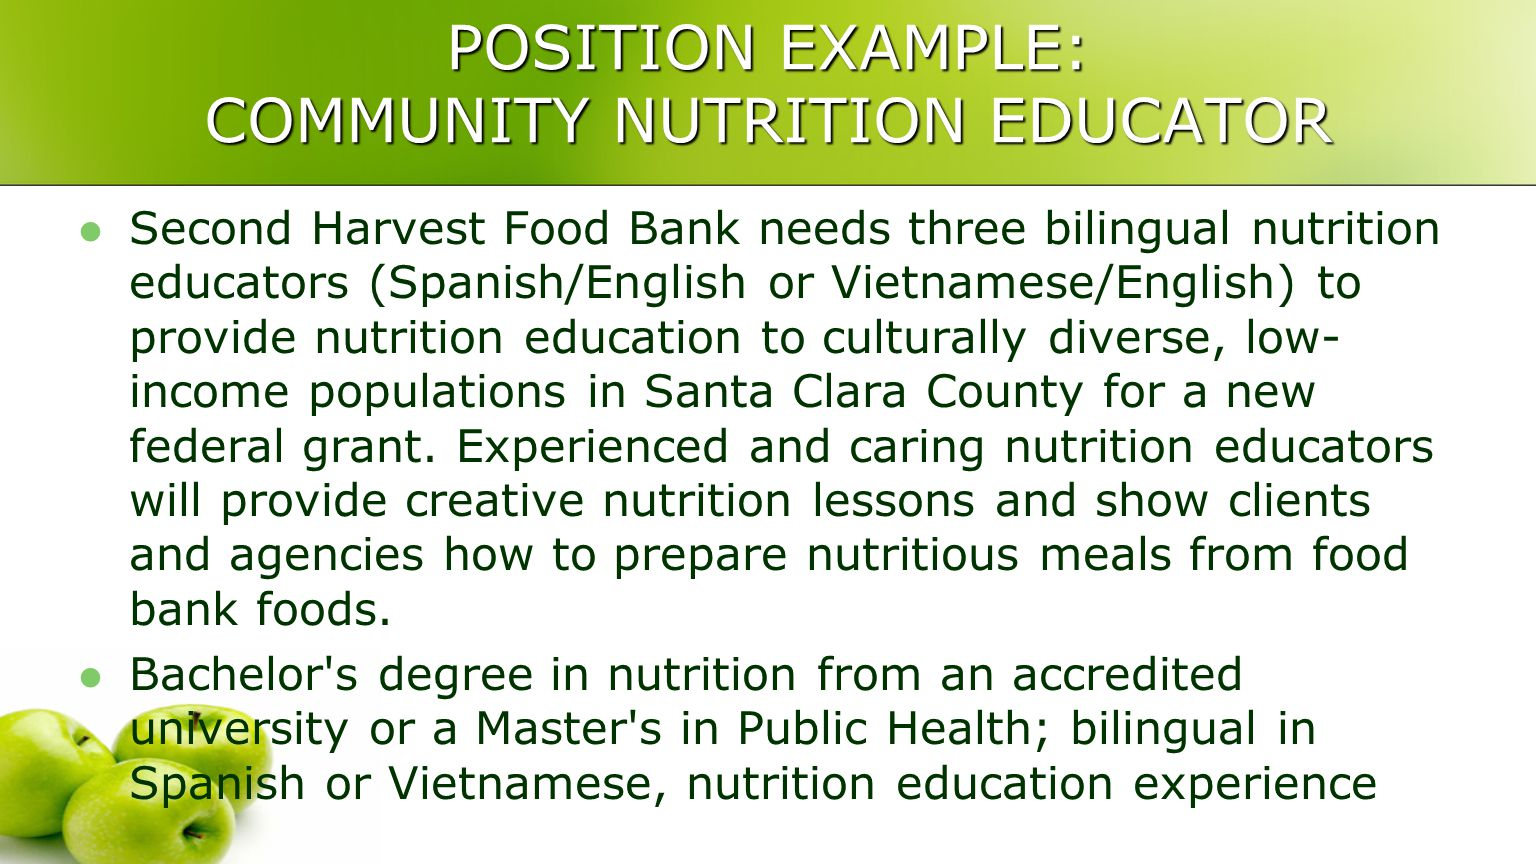 POSITION EXAMPLE: COMMUNITY NUTRITION EDUCATOR Second Harvest Food Bank needs three bilingual nutrition educators (Spanish/English or Vietnamese/English) to provide nutrition education to culturally diverse, low- income populations in Santa Clara County for a new federal grant.